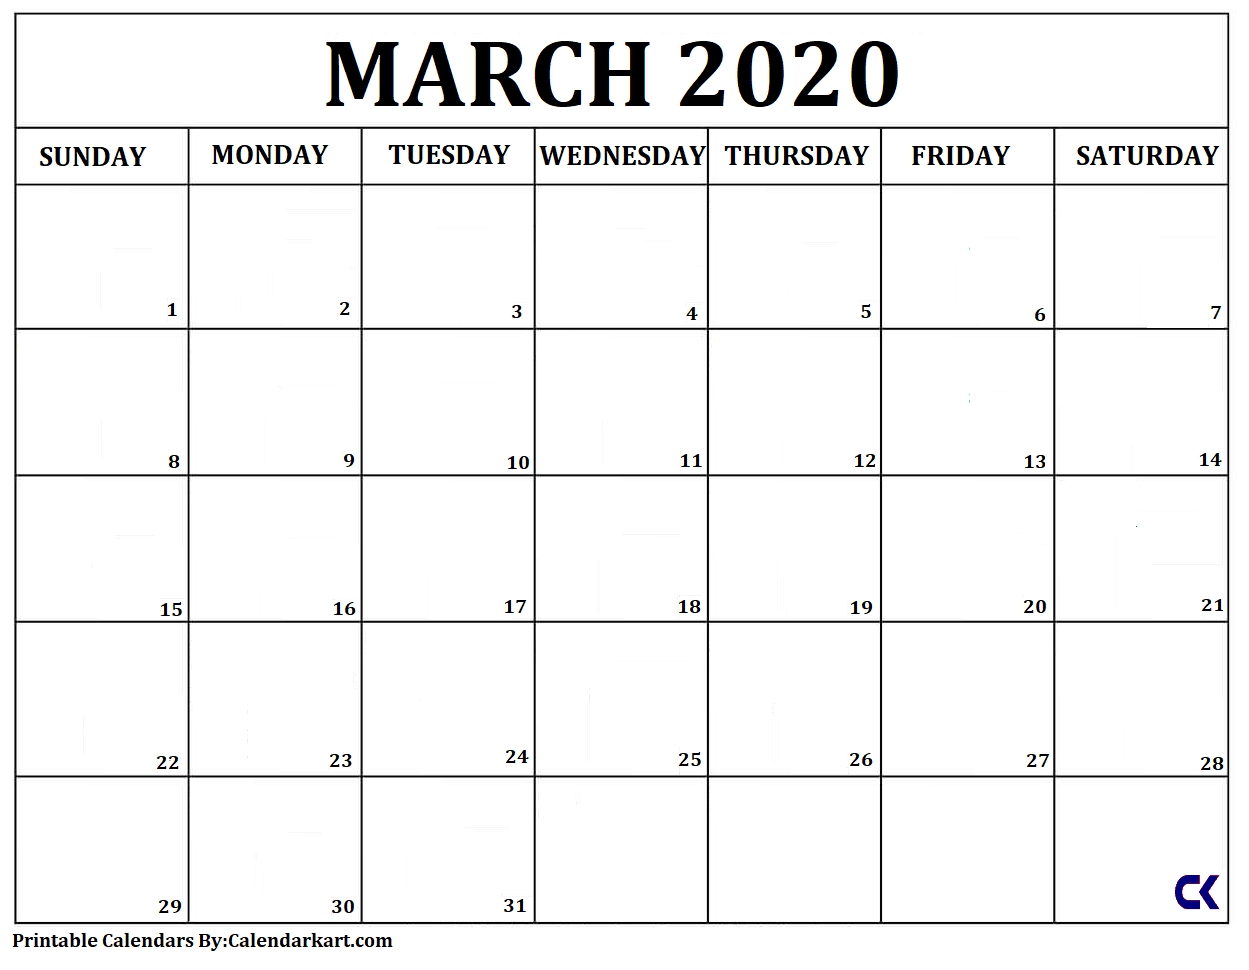 Free Printable Calendars 2020 And 2021: Monthly & Yearly regarding Large Box Printable 2020 Calendar